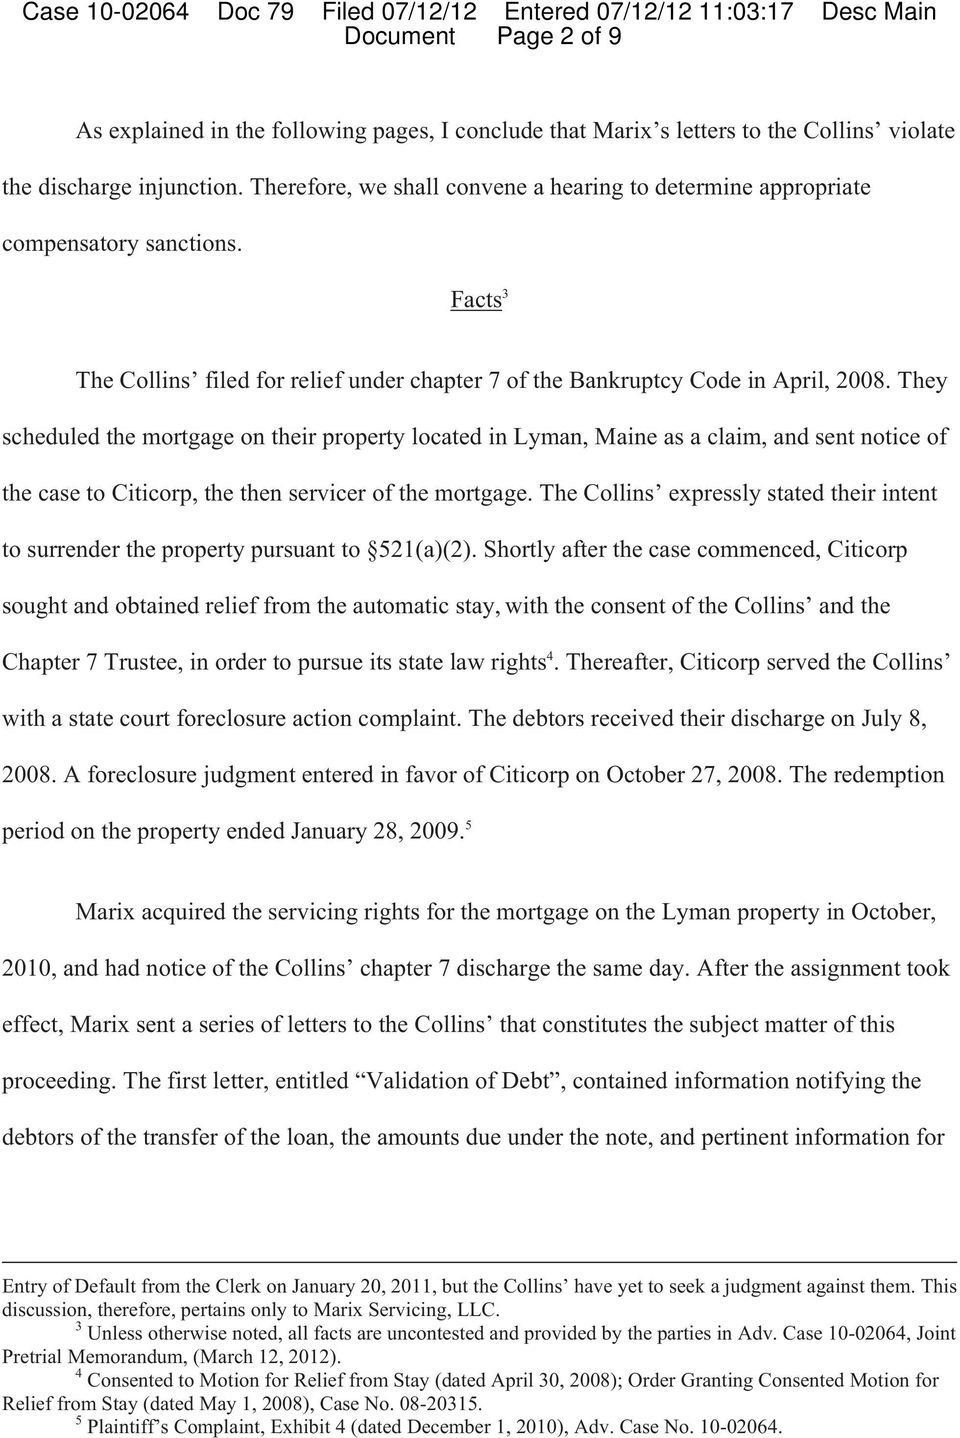 They scheduled the mortgage on their property located in Lyman, Maine as a claim, and sent notice of the case to Citicorp, the then servicer of the mortgage.